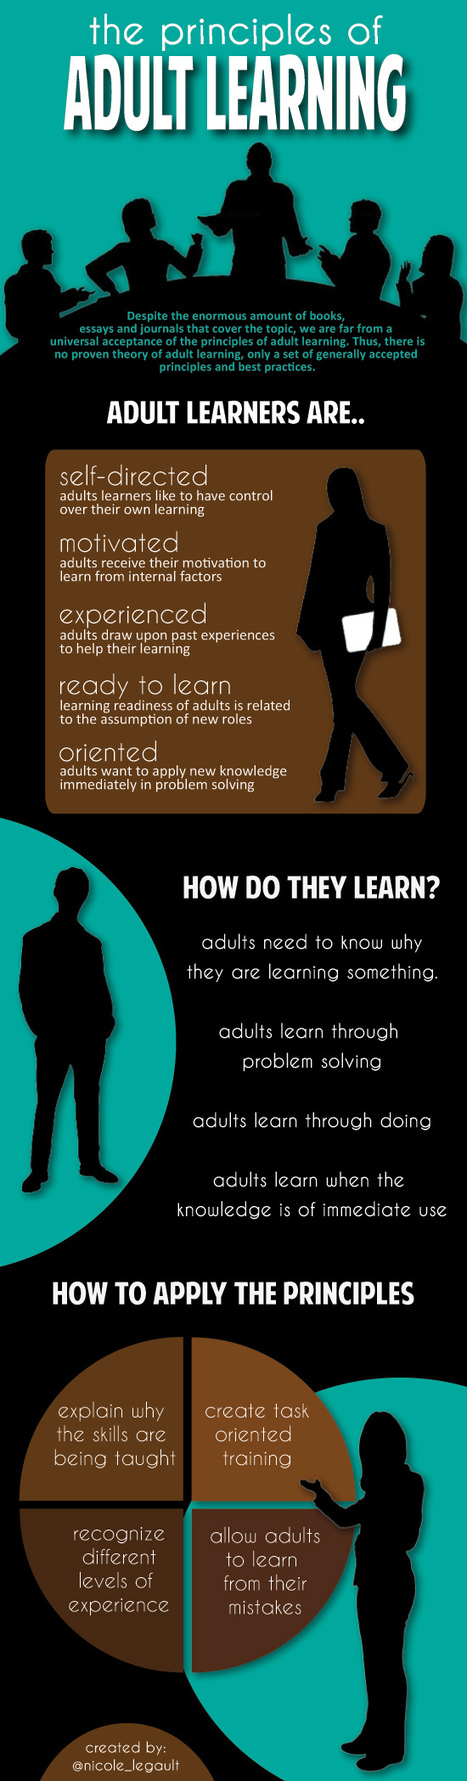 [INFOGRAPHIC] An Overview of the Principles of Adult Learning | IPrincipal | Scoop.it